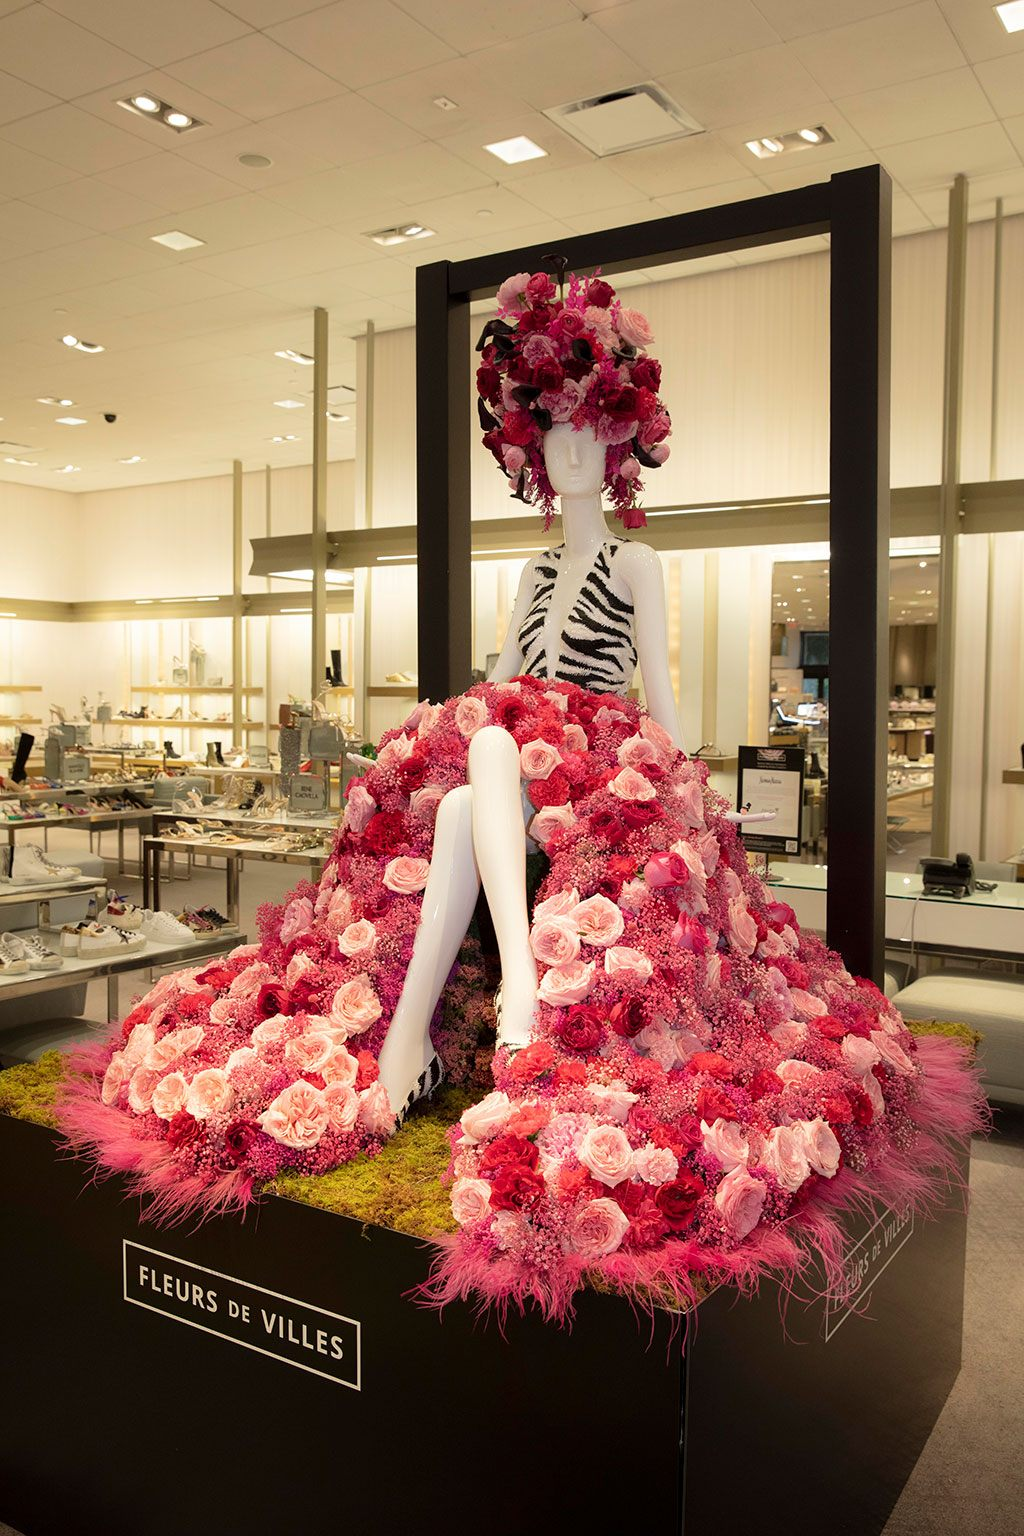 Neiman Marcus Mannequin Created by Aniska Creations. Photo by Theodora Richter